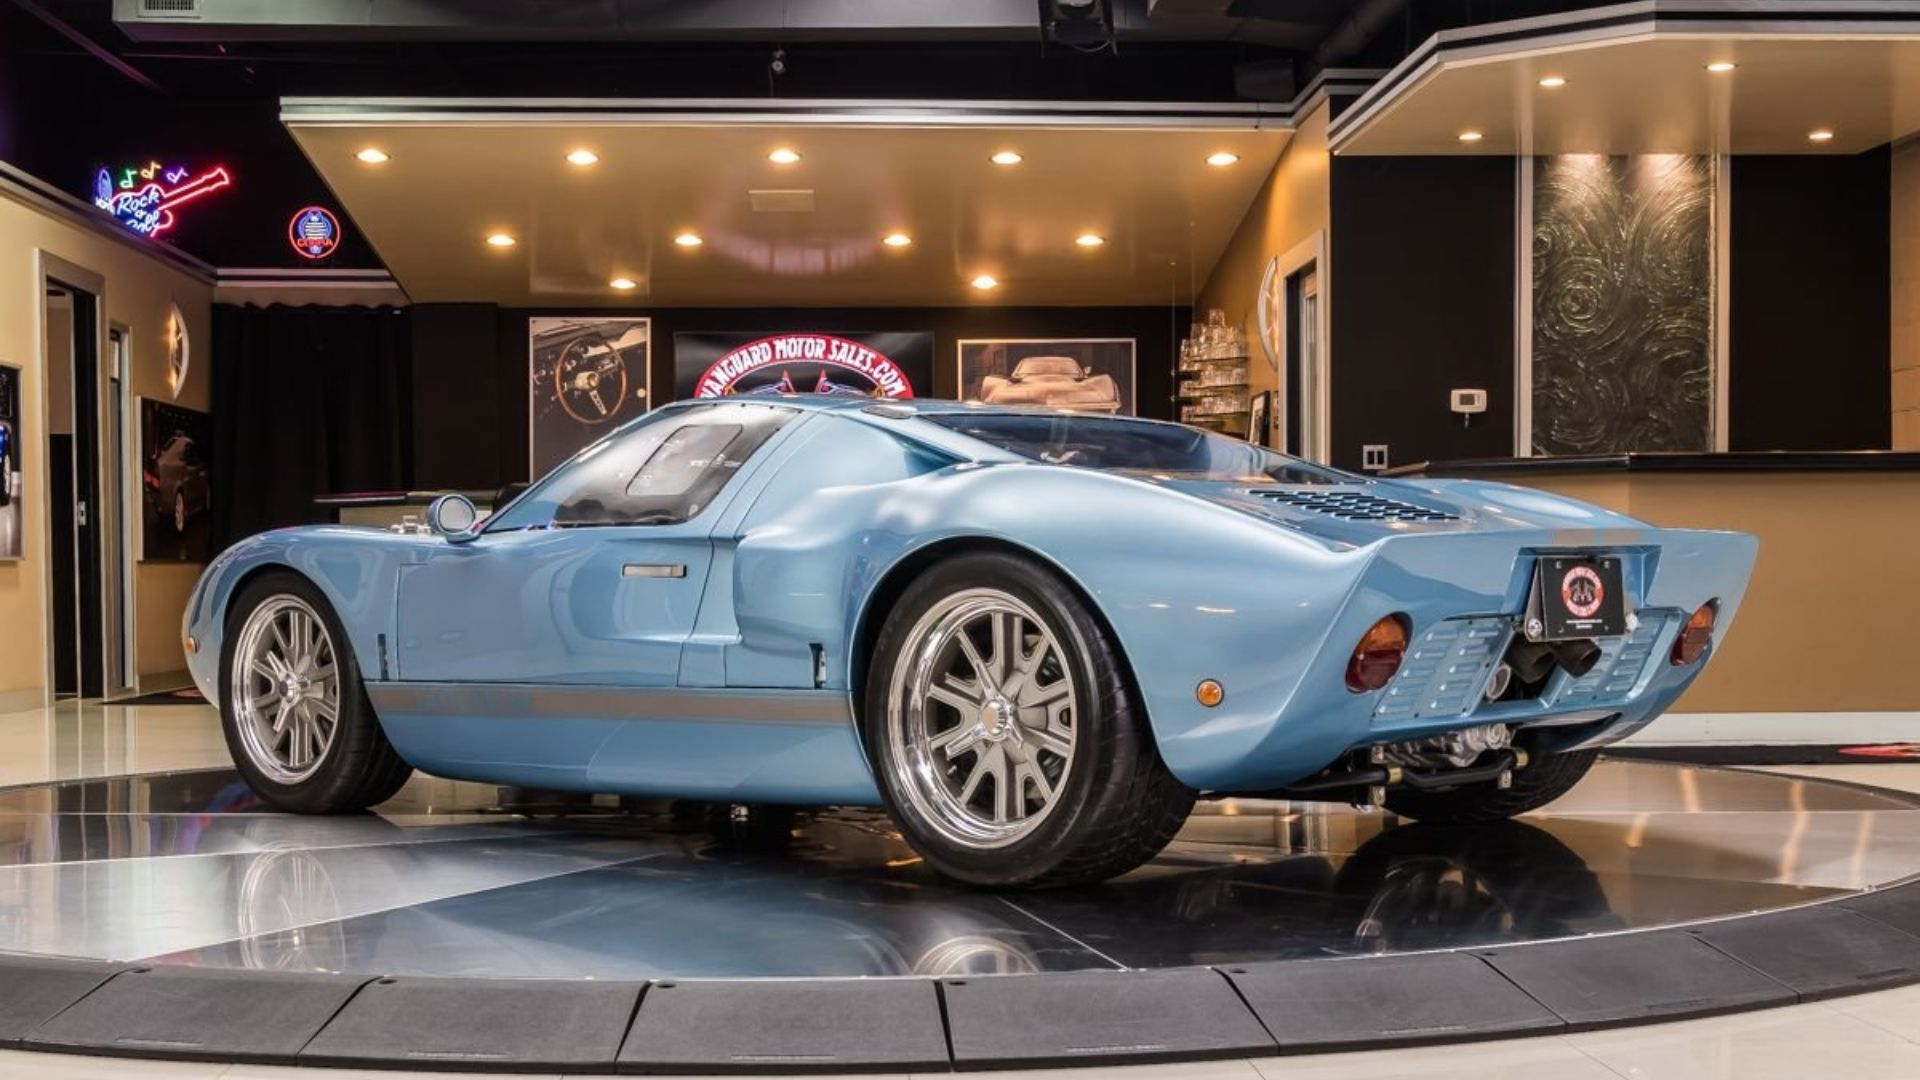 Gorgeous 1965 Ford GT40 By Active Power Cars Is Ready To Track Or Show